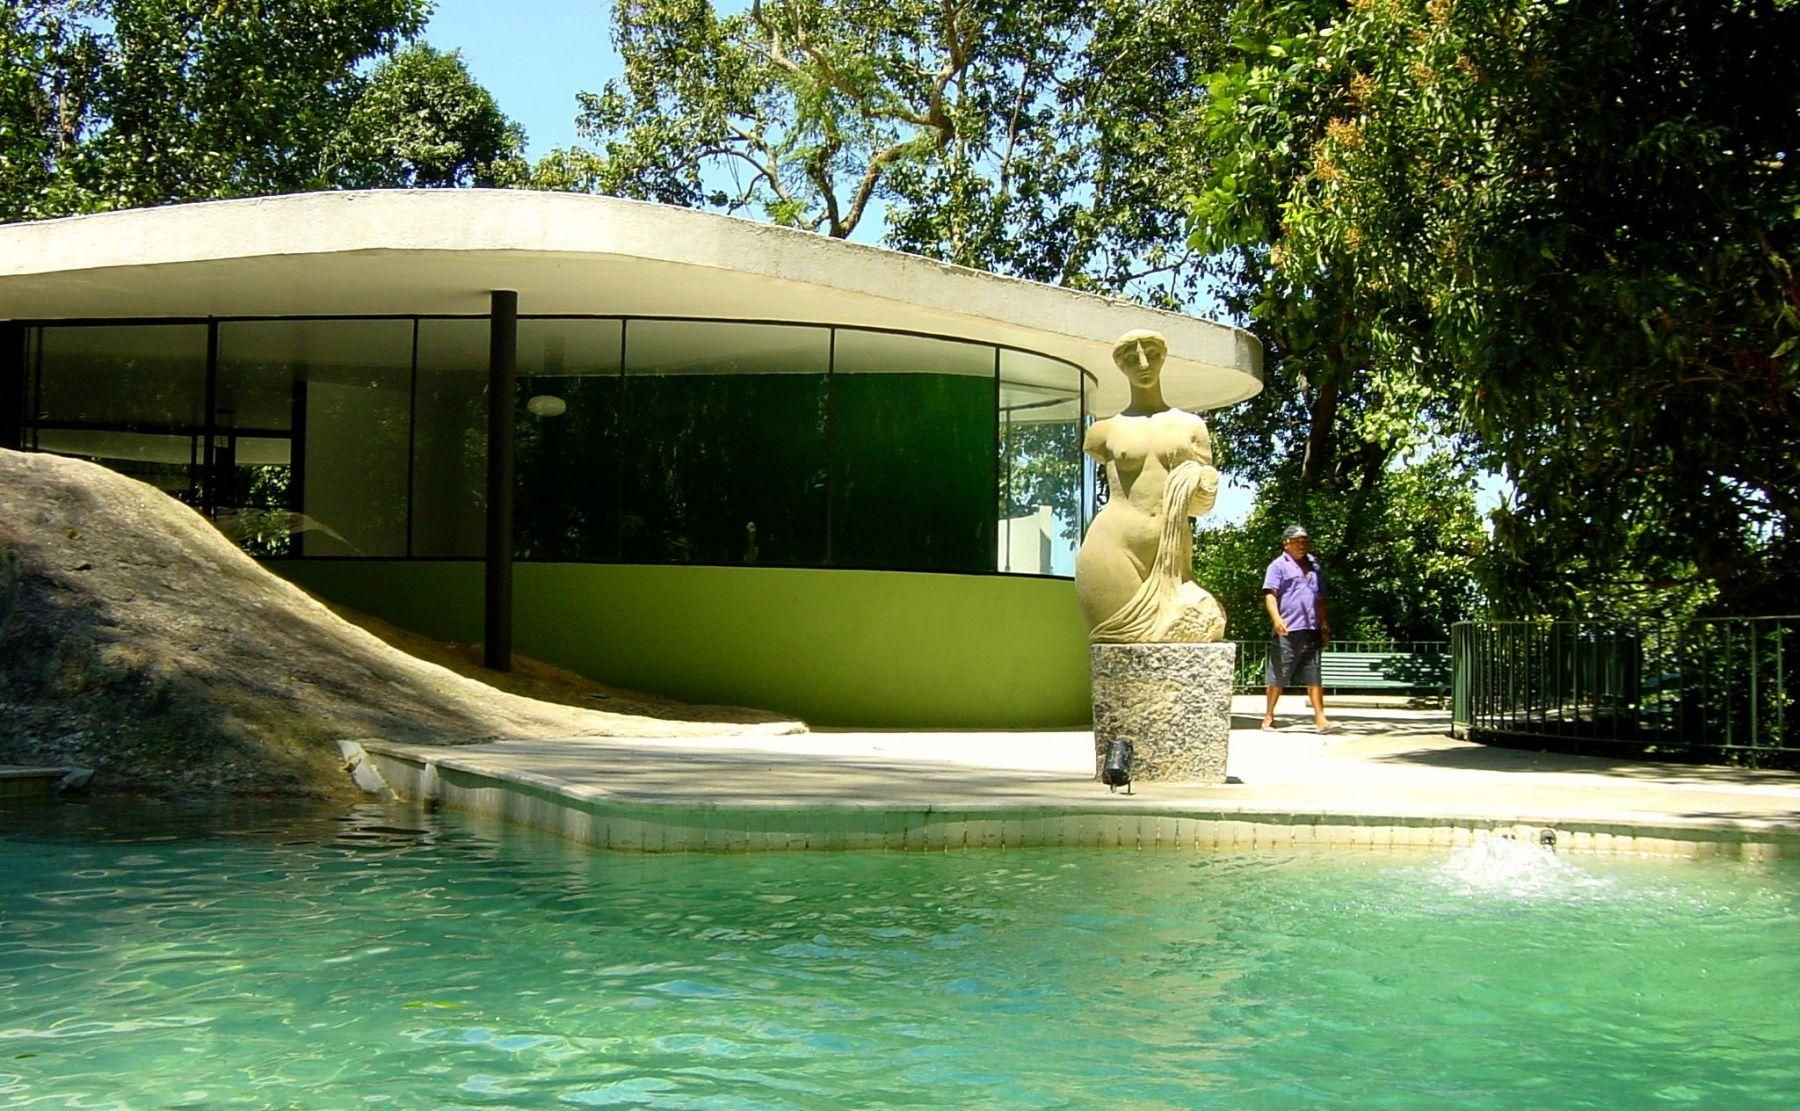 Best Kitchen Gallery: Considered One Of The Most Significant Ex Les Of Modern of Mid Century Modern Homes Los Angeles  on rachelxblog.com